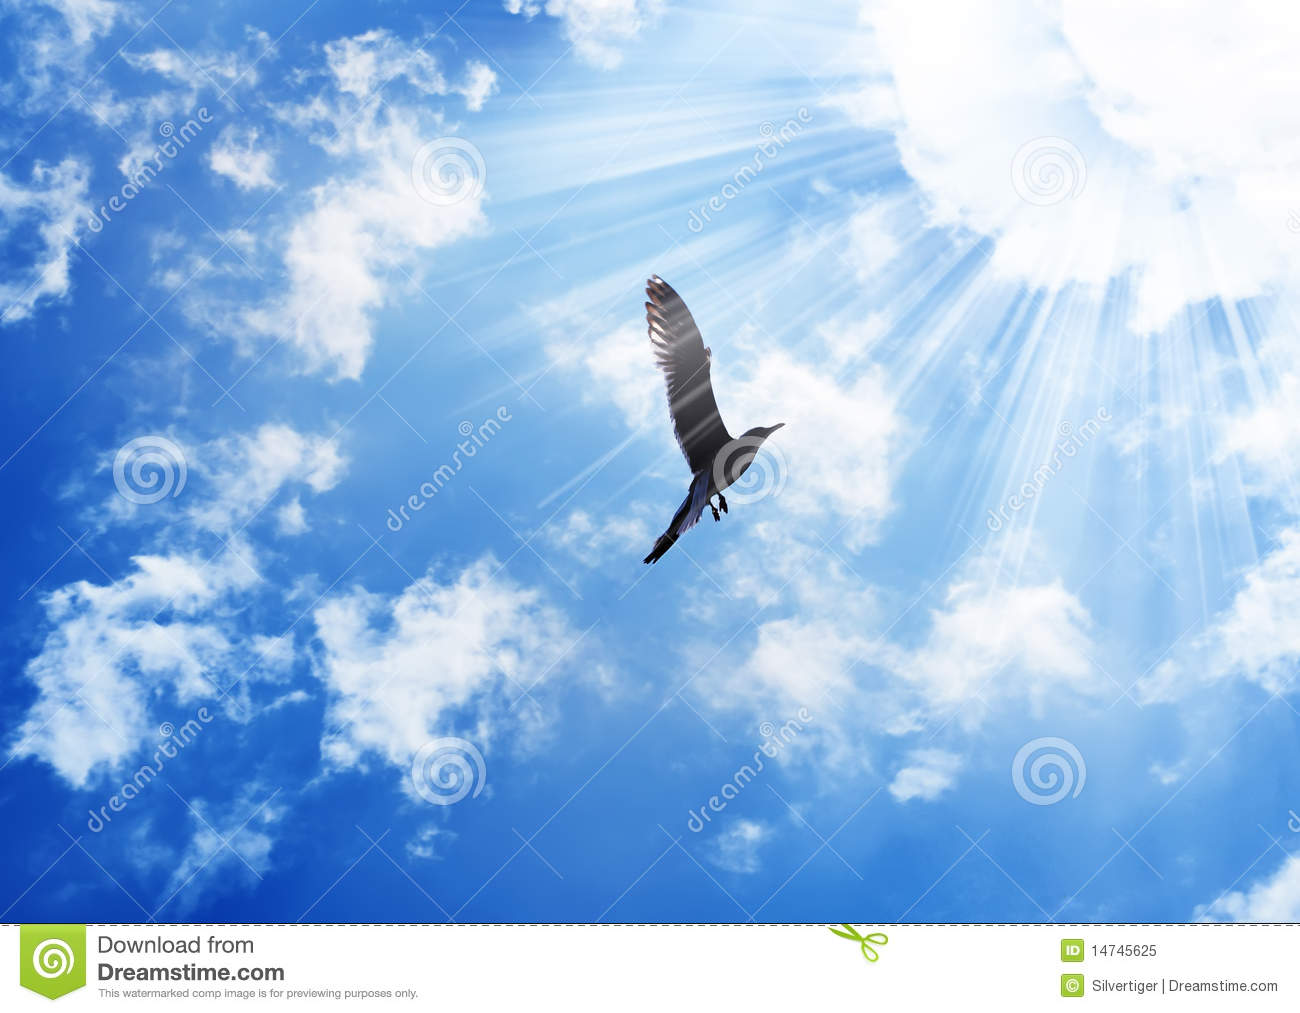 Flying Birds Free Stock Photos Download 3 416 Free Stock: Bird Flying To The Sun Stock Image. Image Of Dramatic